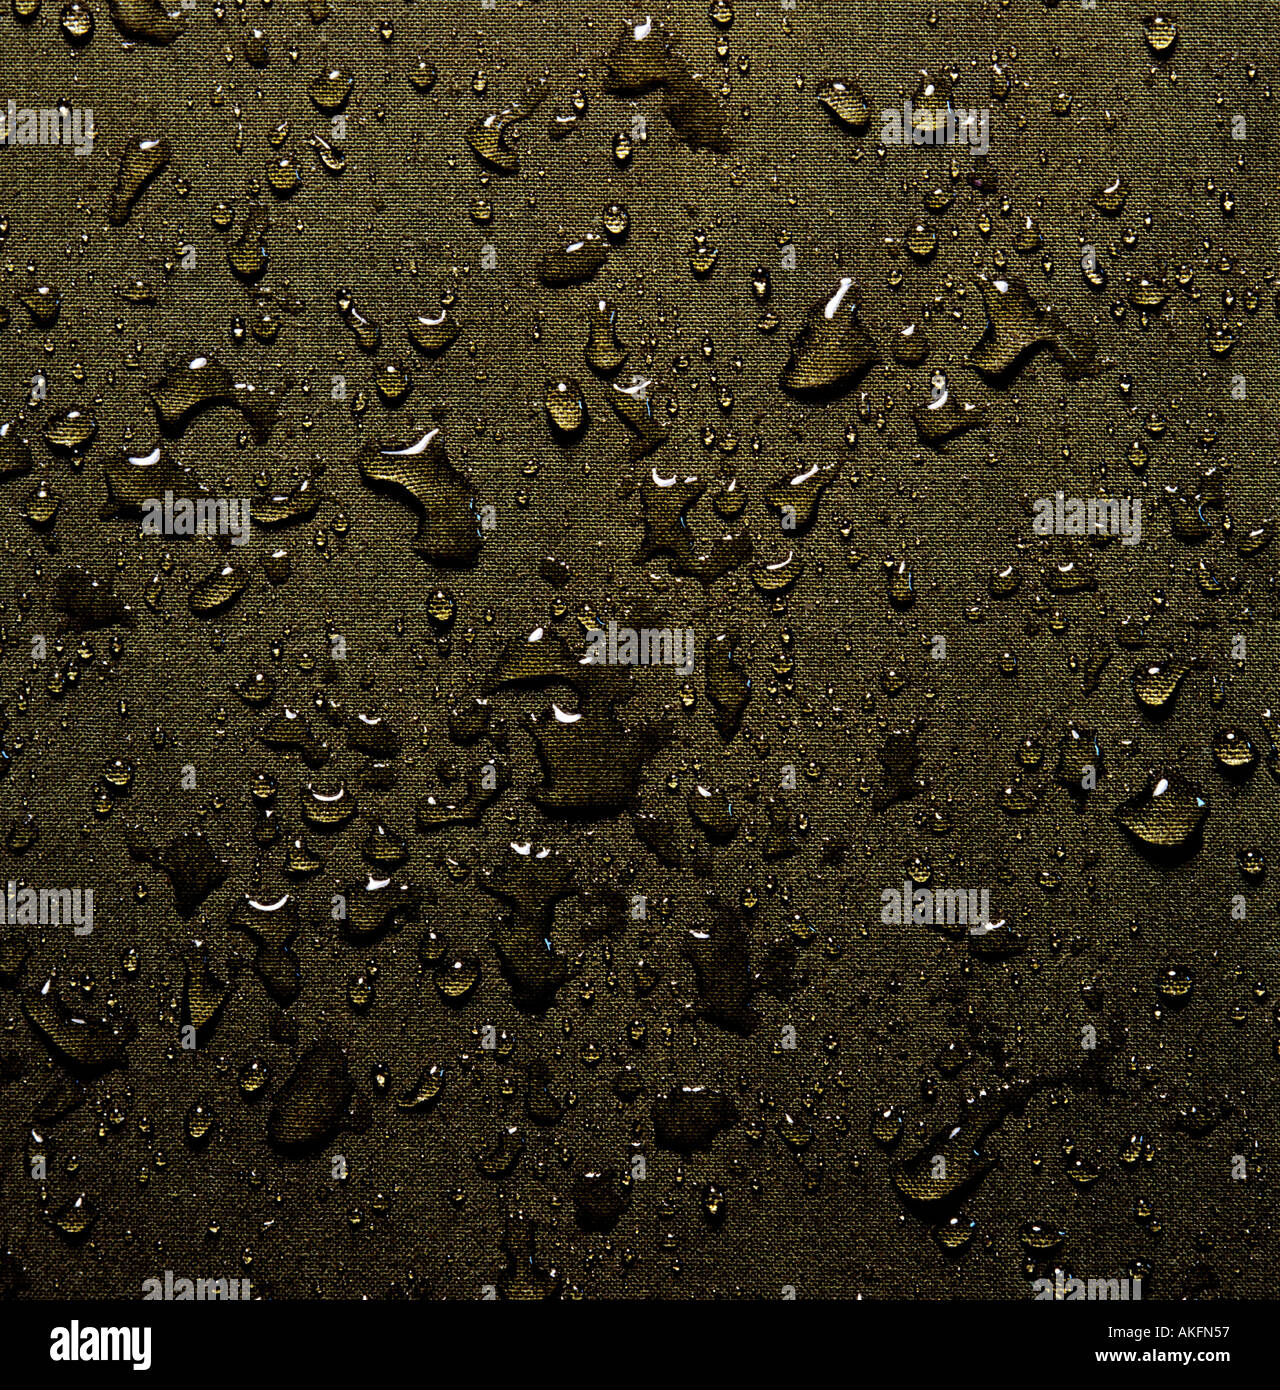 waterdrops on laminated pressboard - Stock Image